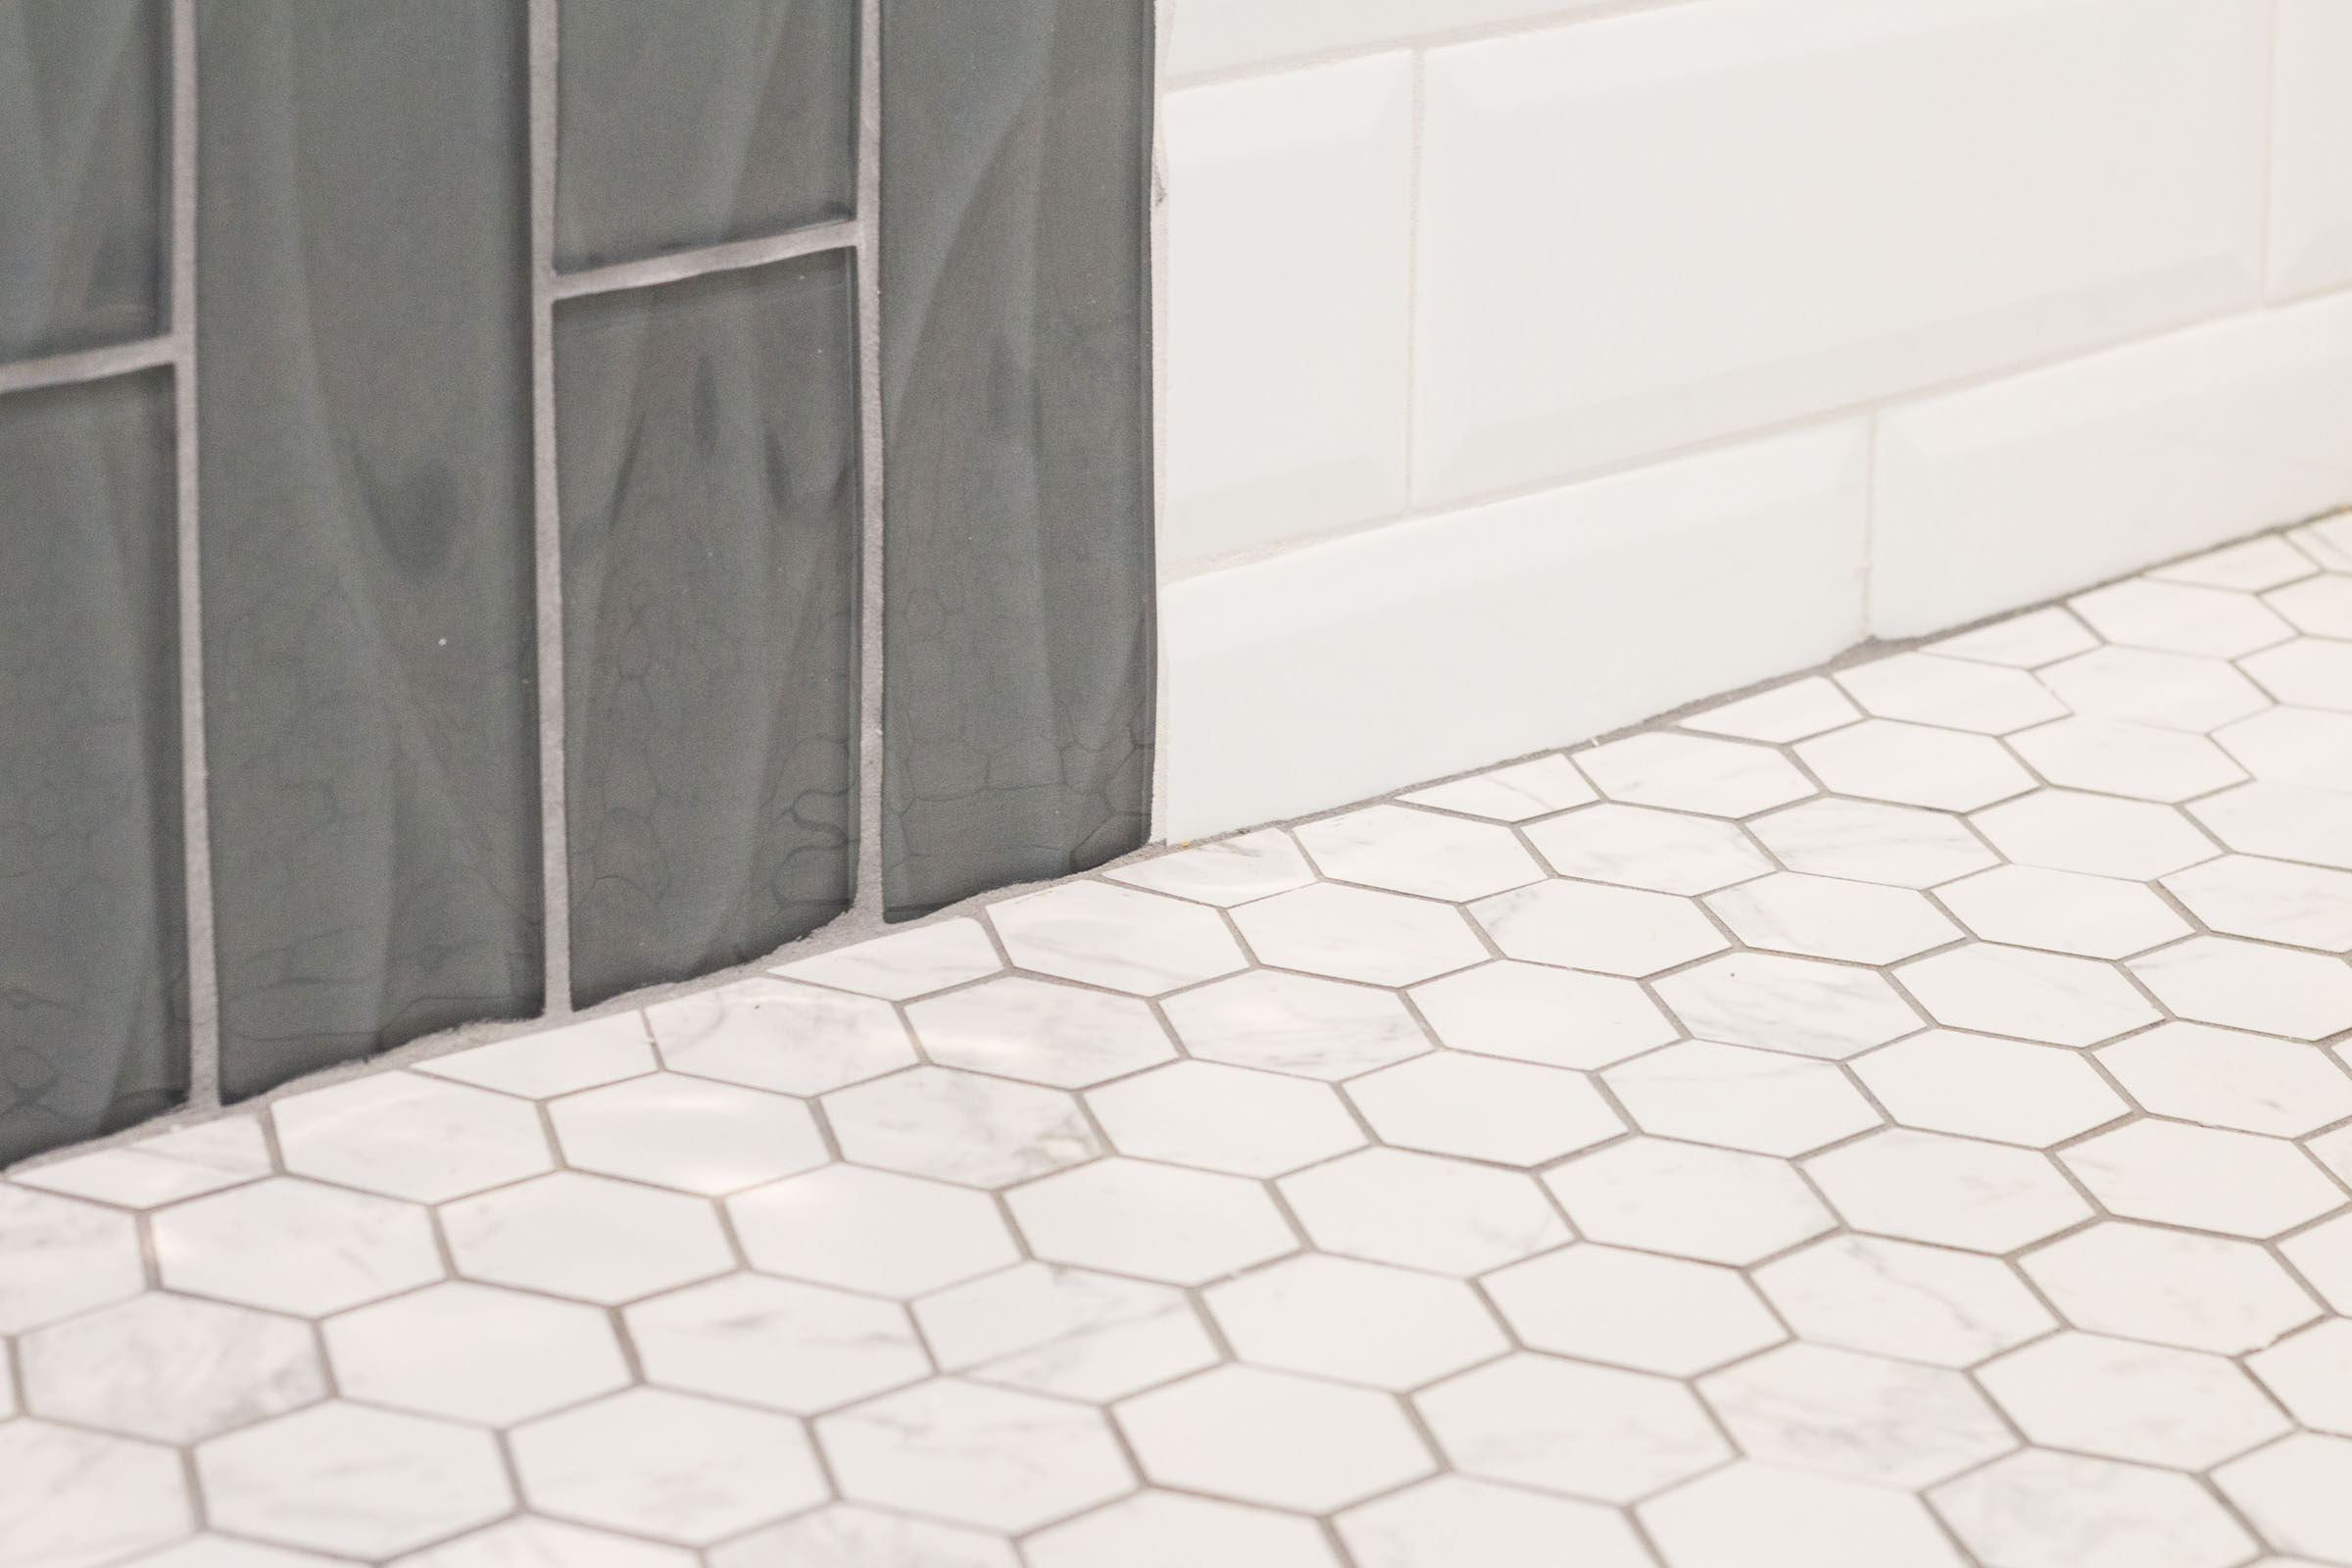 Close up picture of shower tile with grey vertical glass subway tile, white horizontal subway tile, and octogonal floor tile